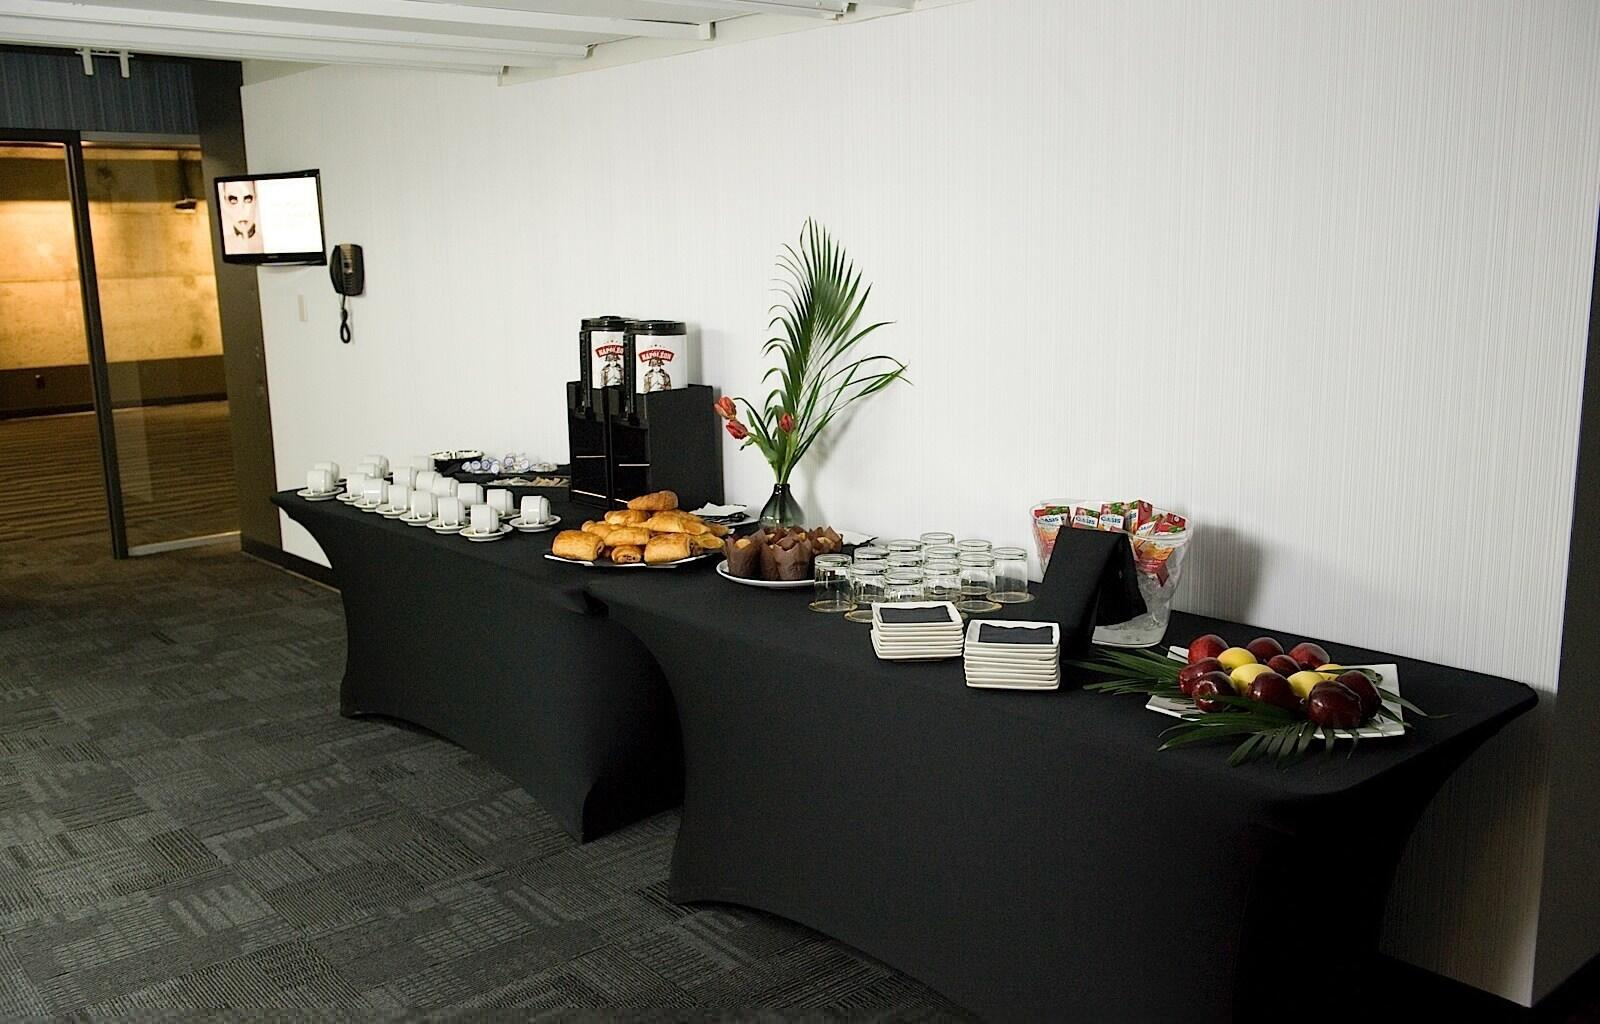 Breakfast Buffet in Meeting Room